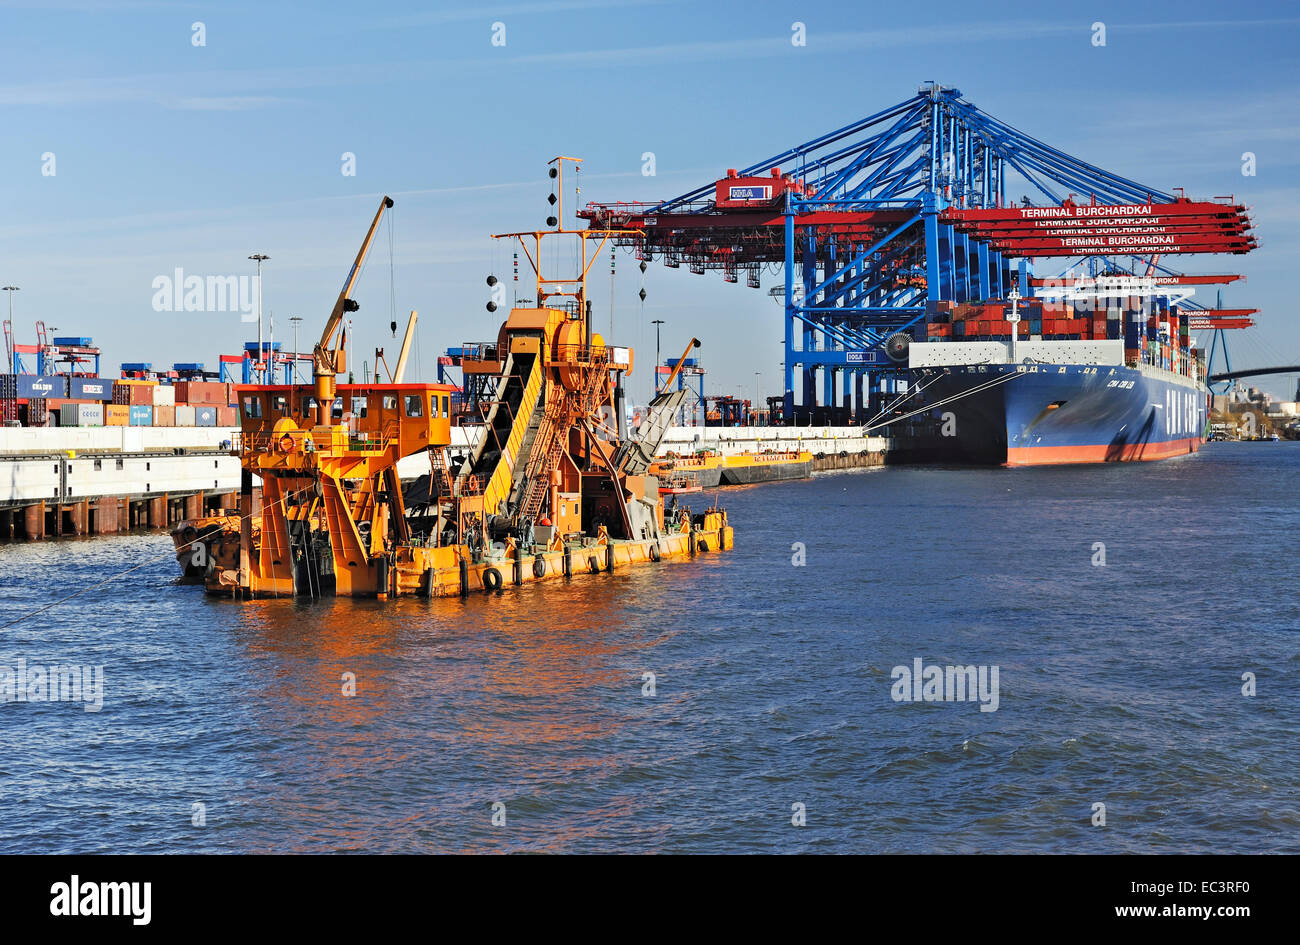 Bucket dredger Odin, deepening of river Elbe in Hamburg Harbour, Germany, Europe Stock Photo